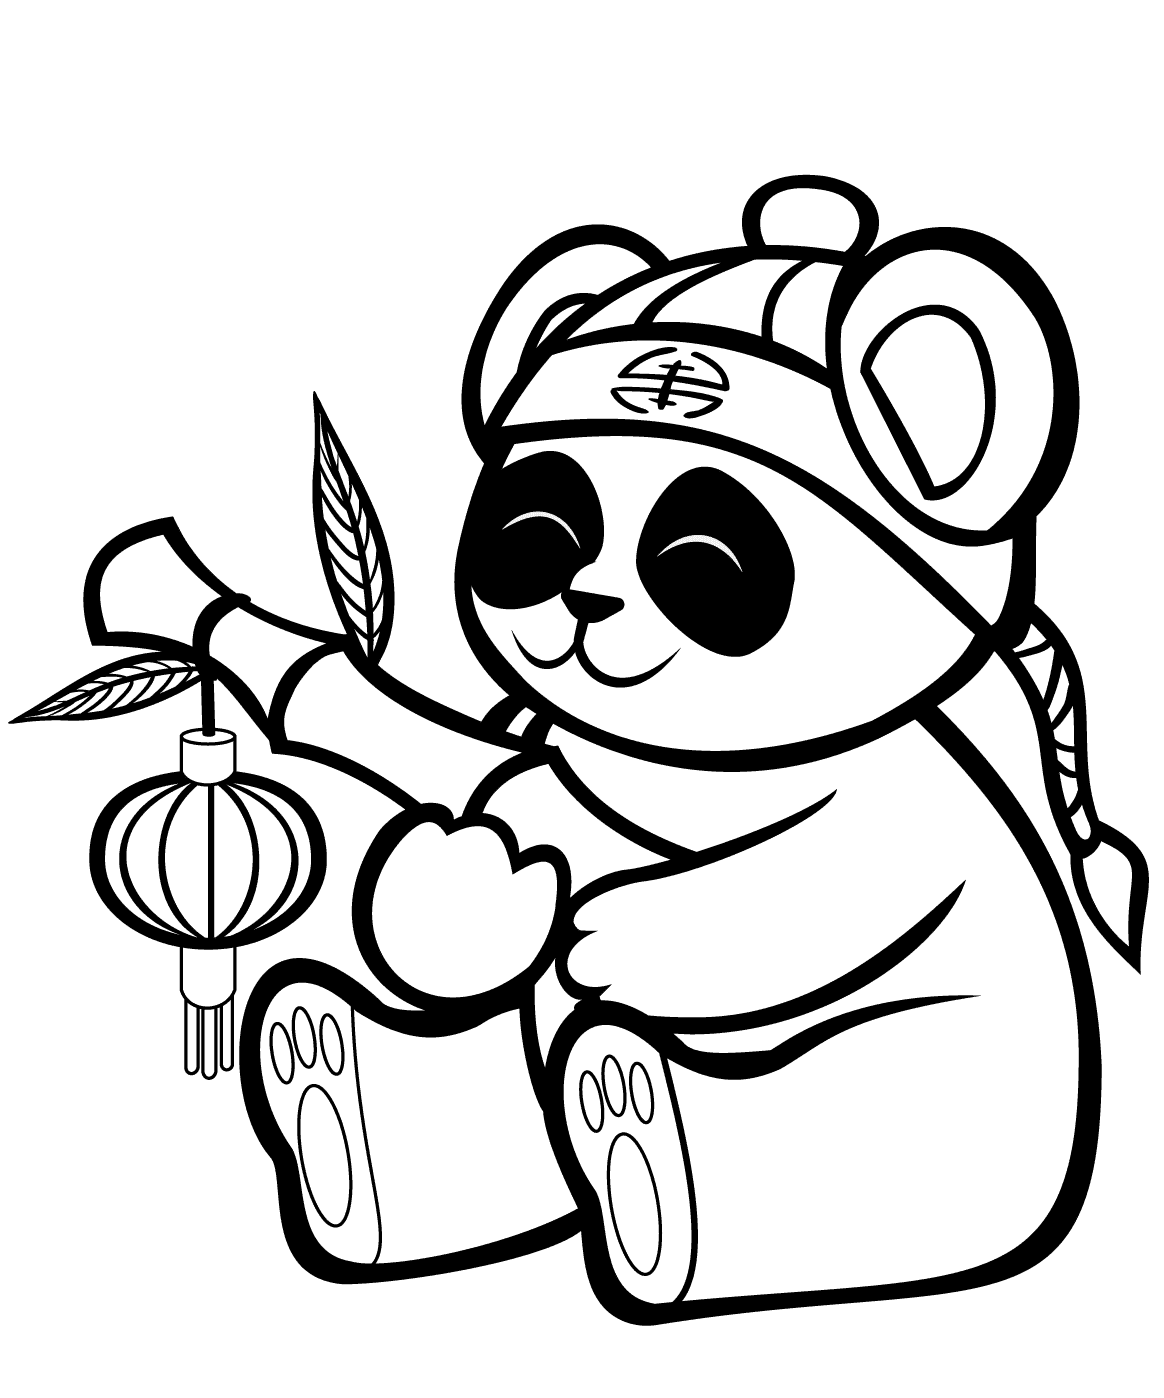 Panda Coloring Page For Preschoolers